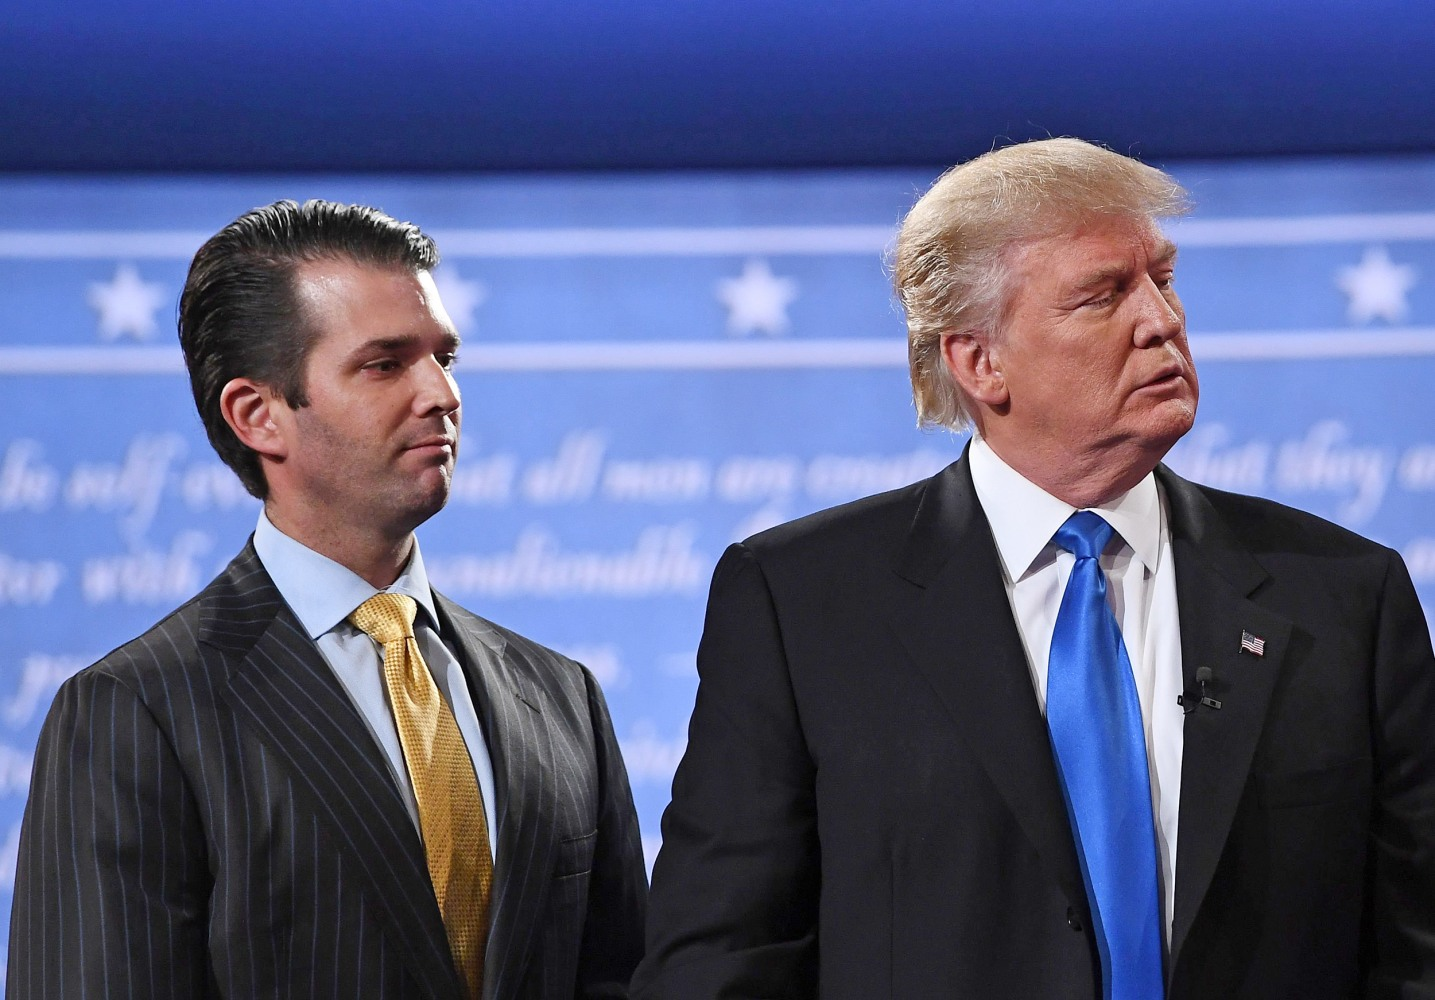 Trump Jr. Won't Provide Details of a Call With His Father